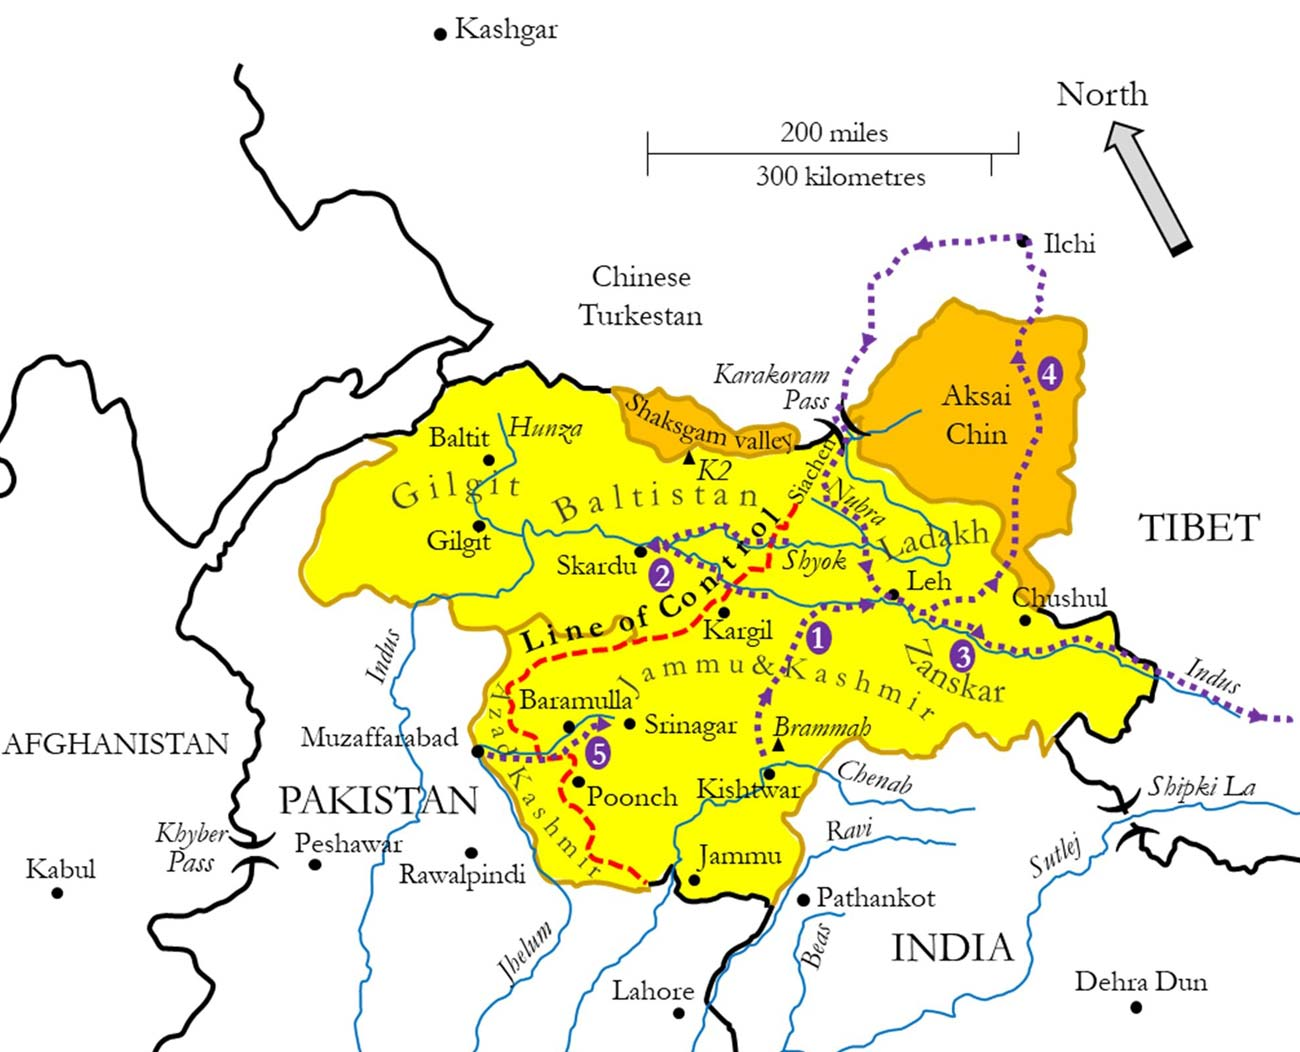 Kashmir disputed territories map